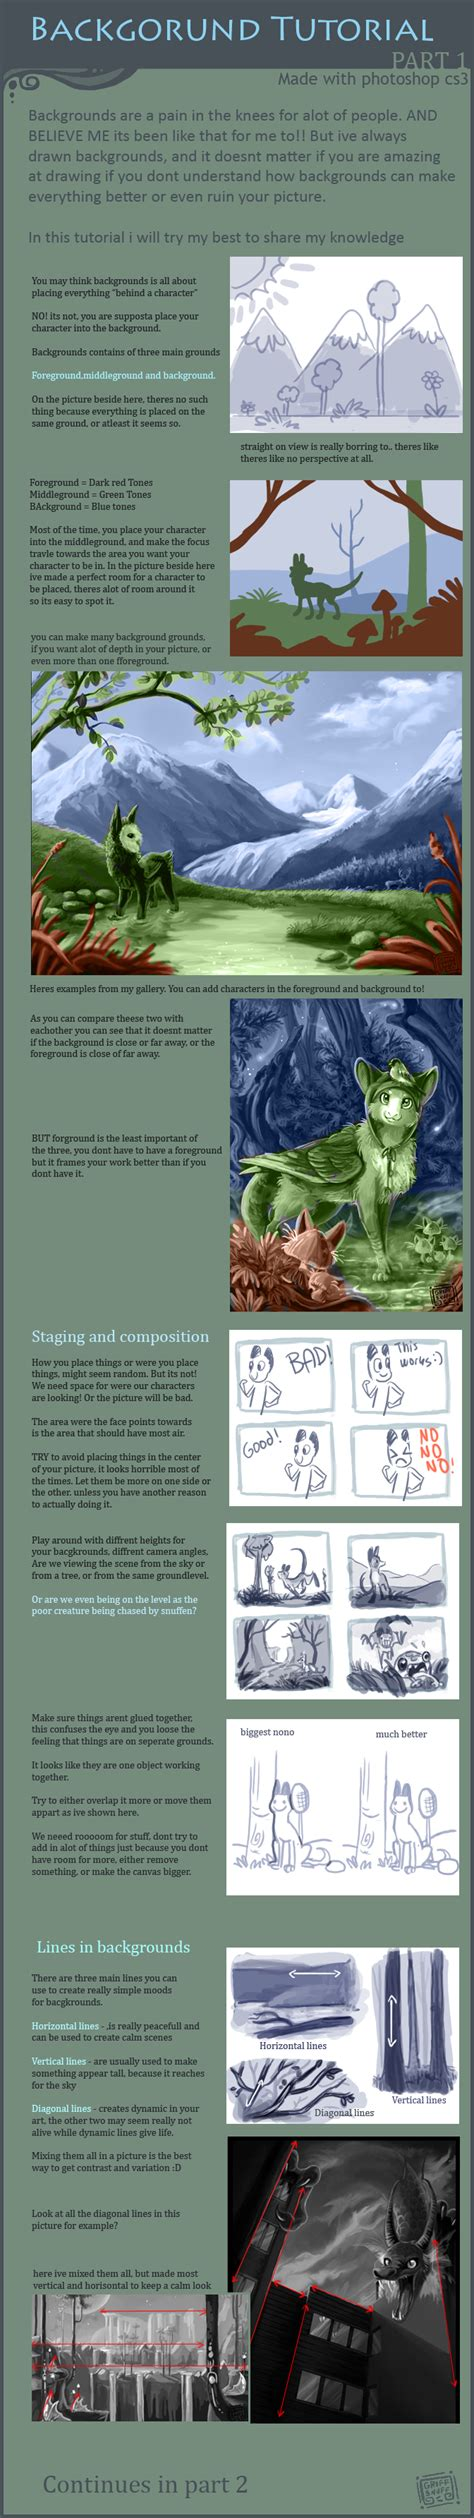 tutorial photoshop deviantart background tutorial part1 by griffsnuff on deviantart